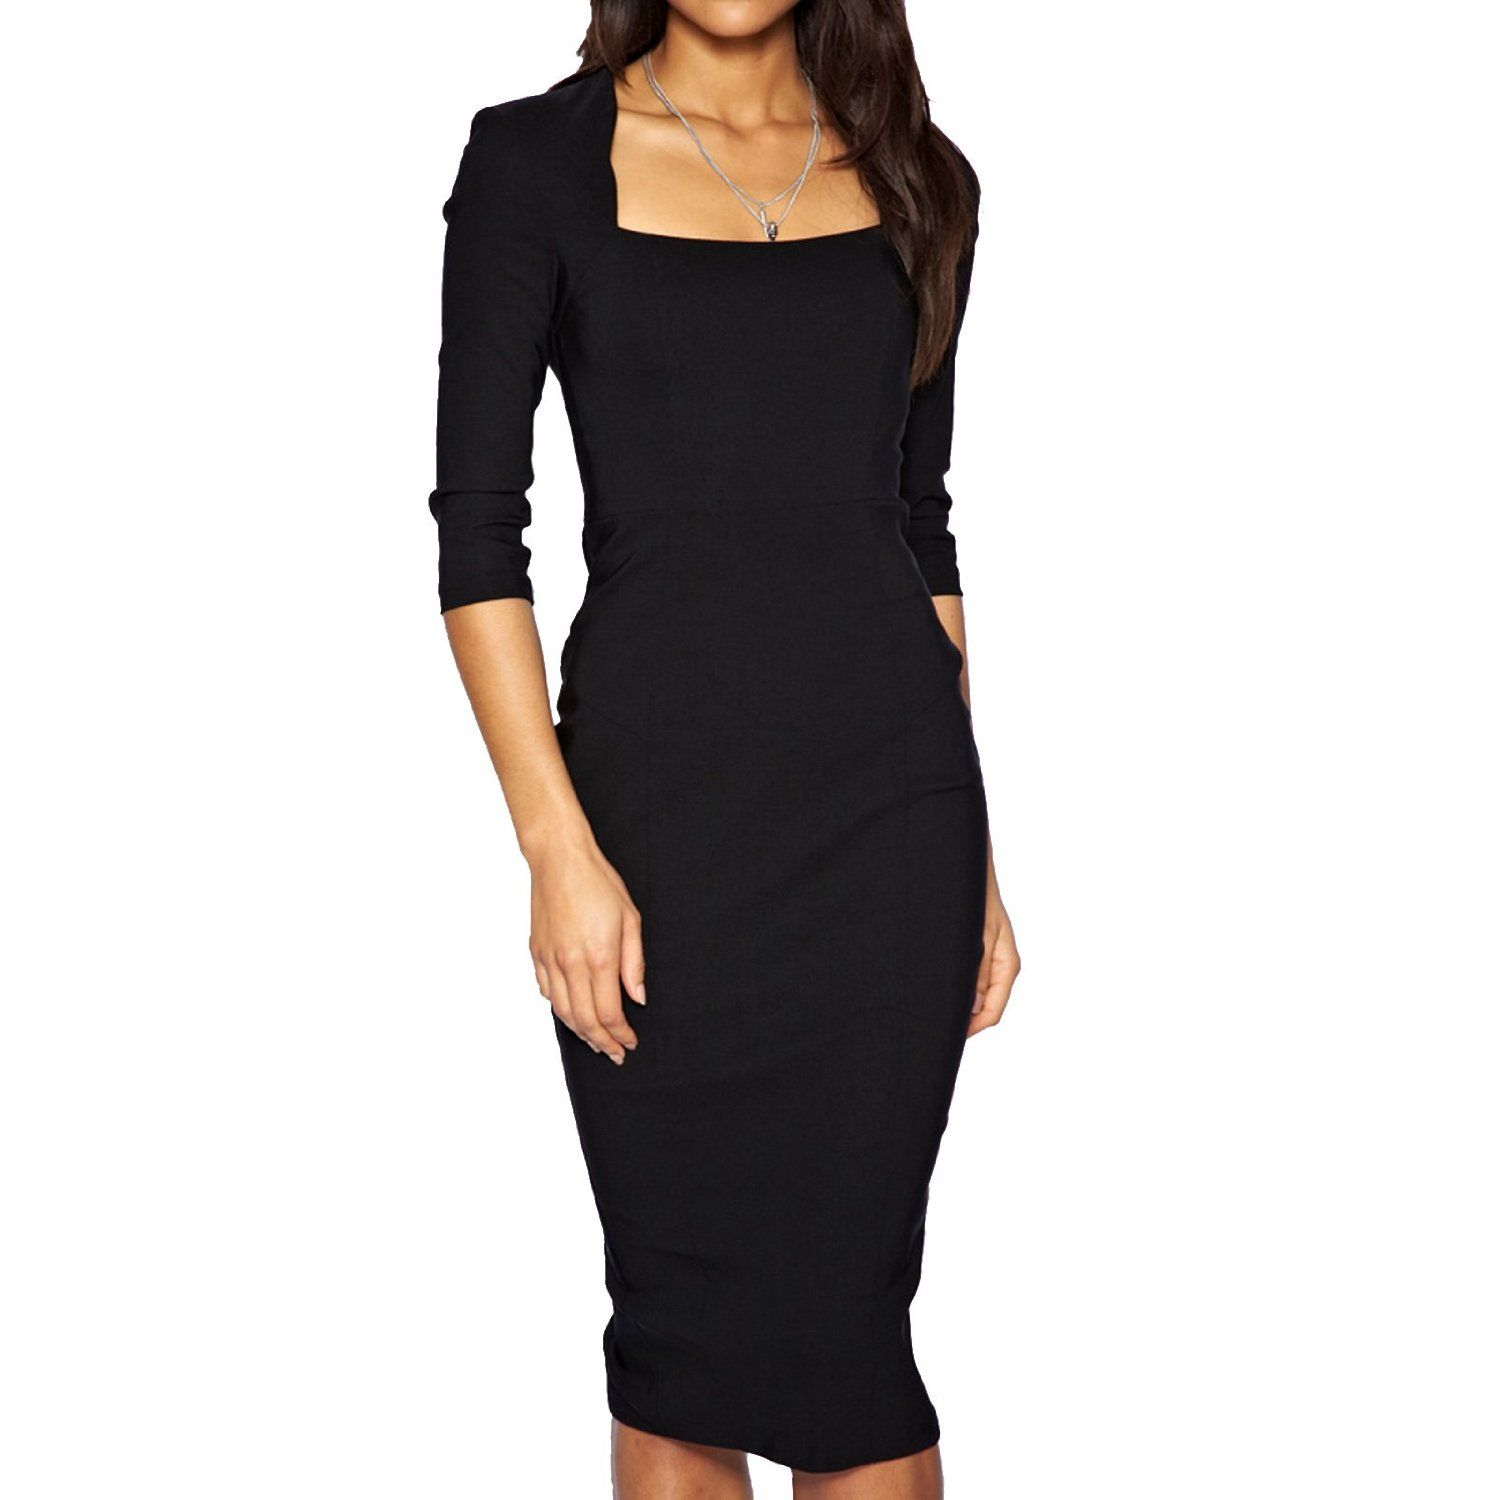 Pencil Dress With Sleeves Black Office Dress For Women Office